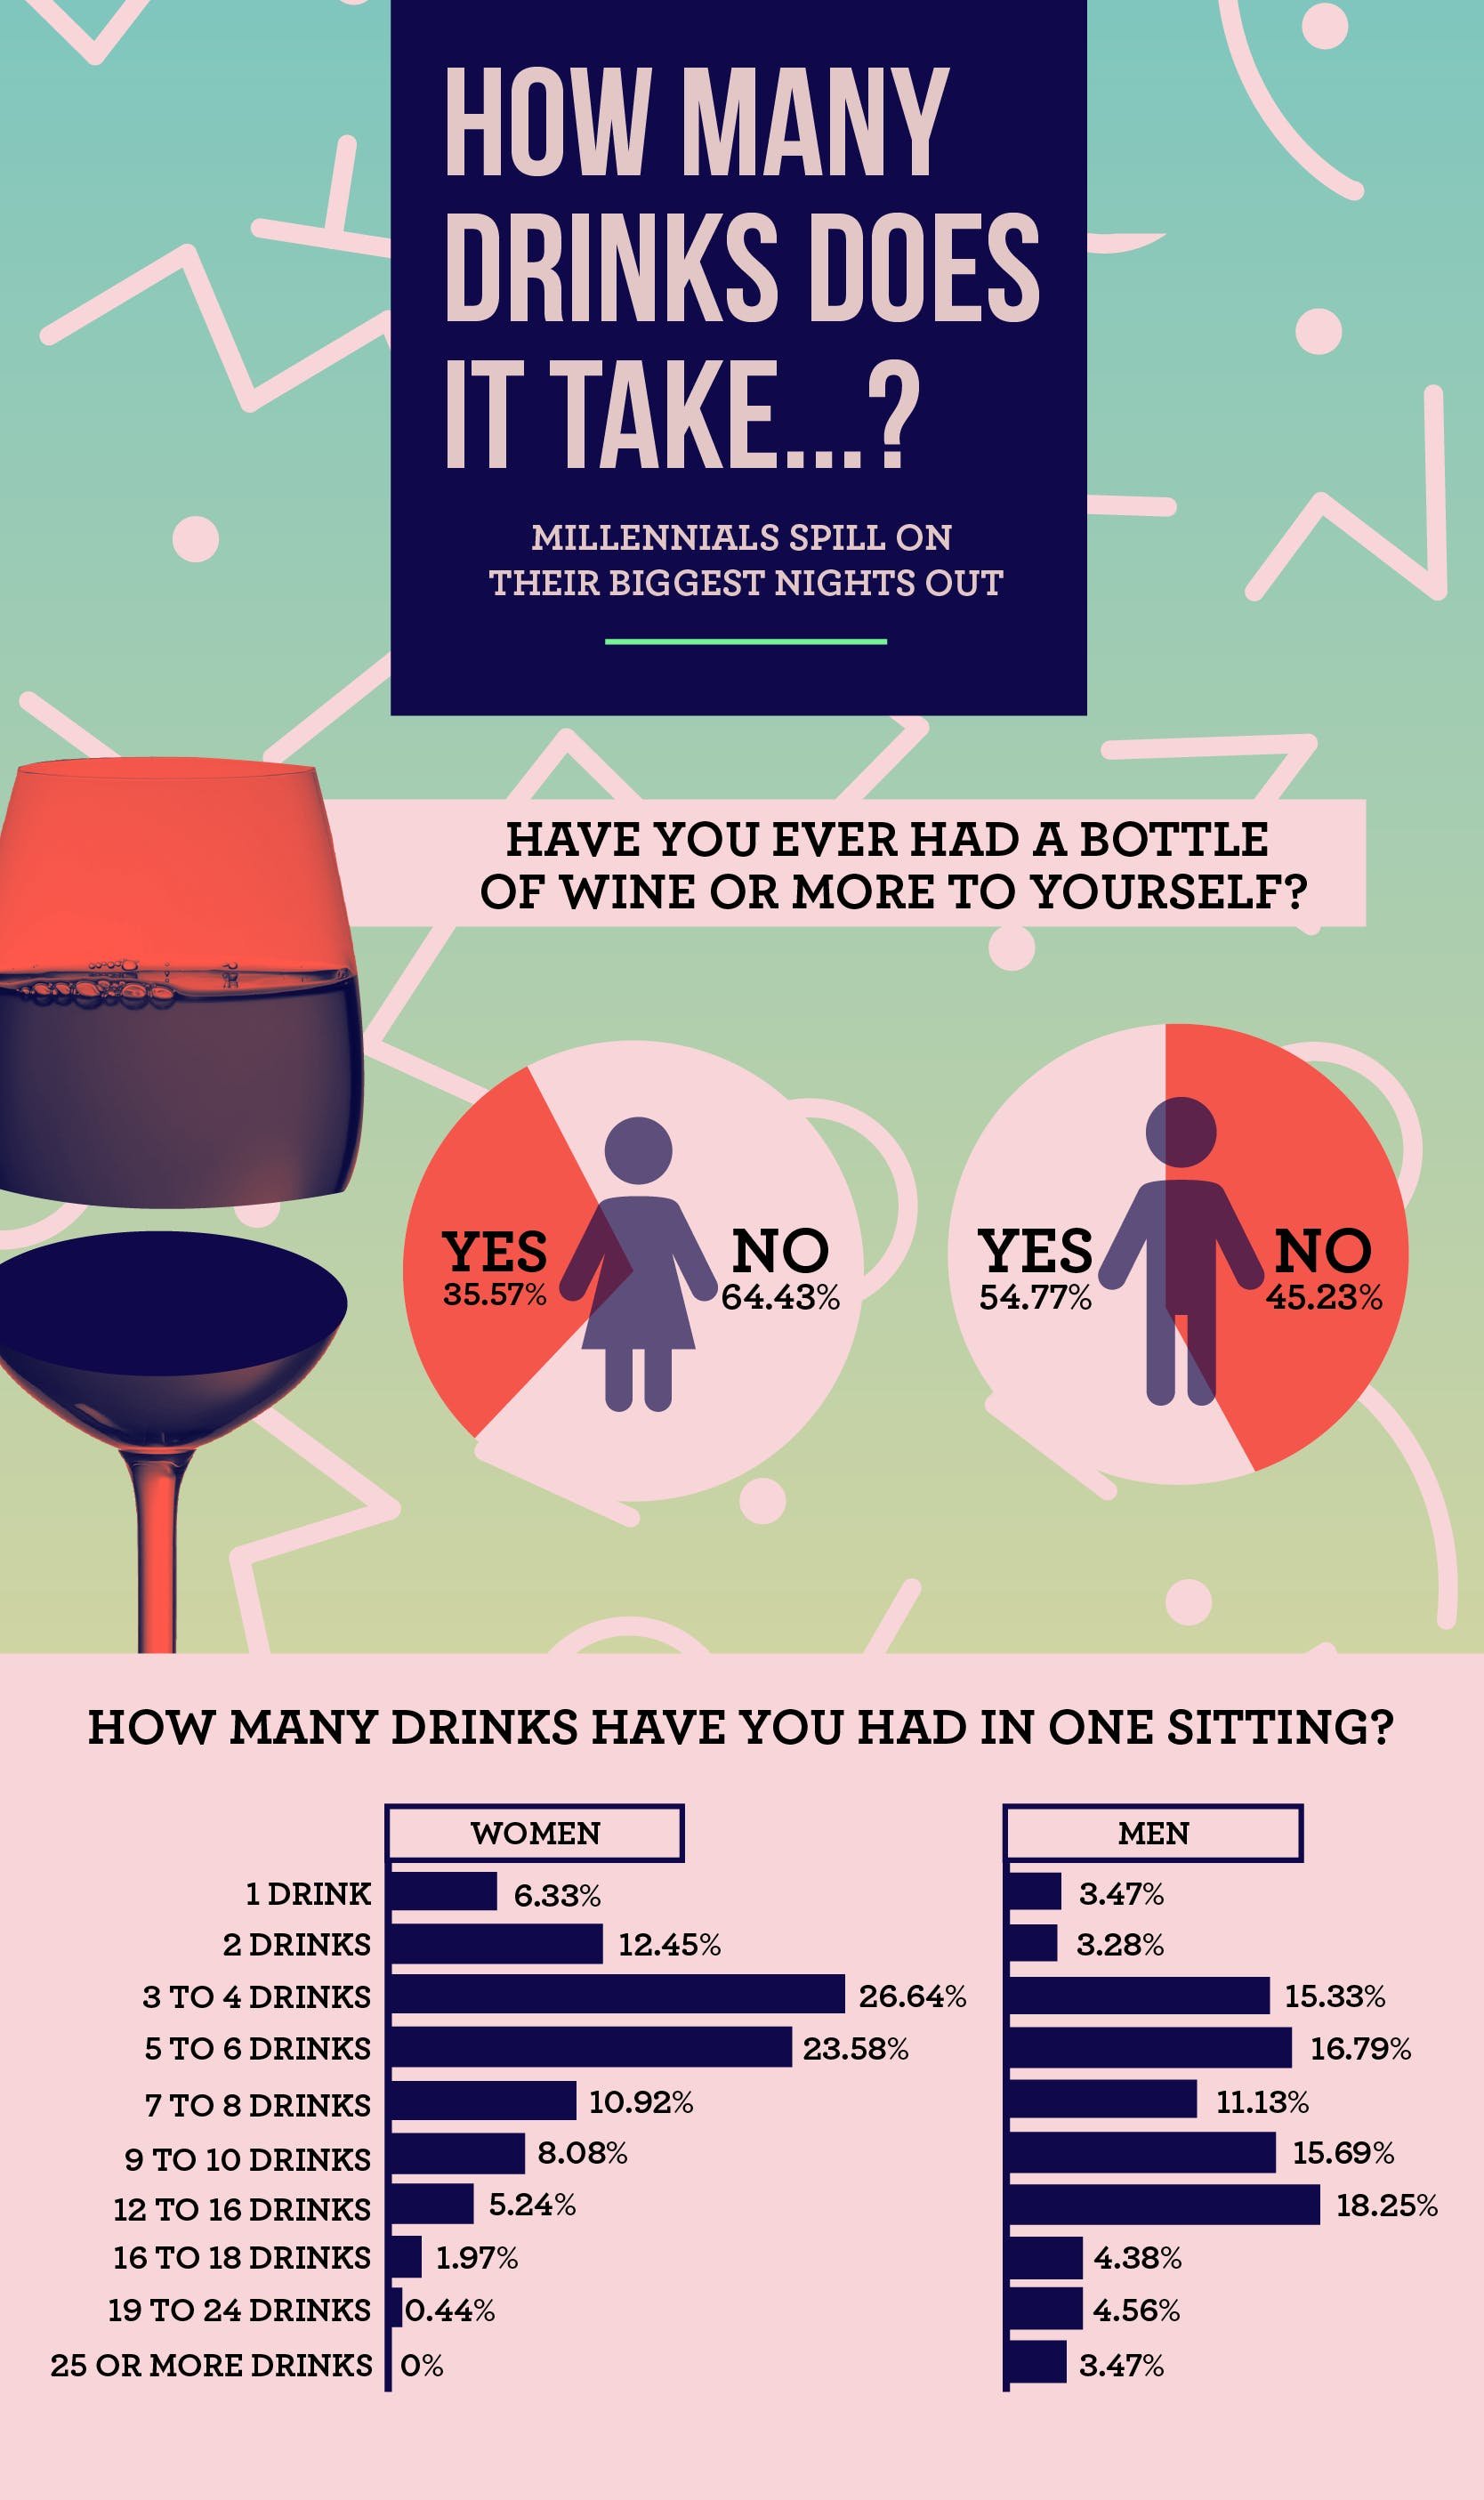 Millennial men are more likely to finish a bottle of wine by themselves than women.